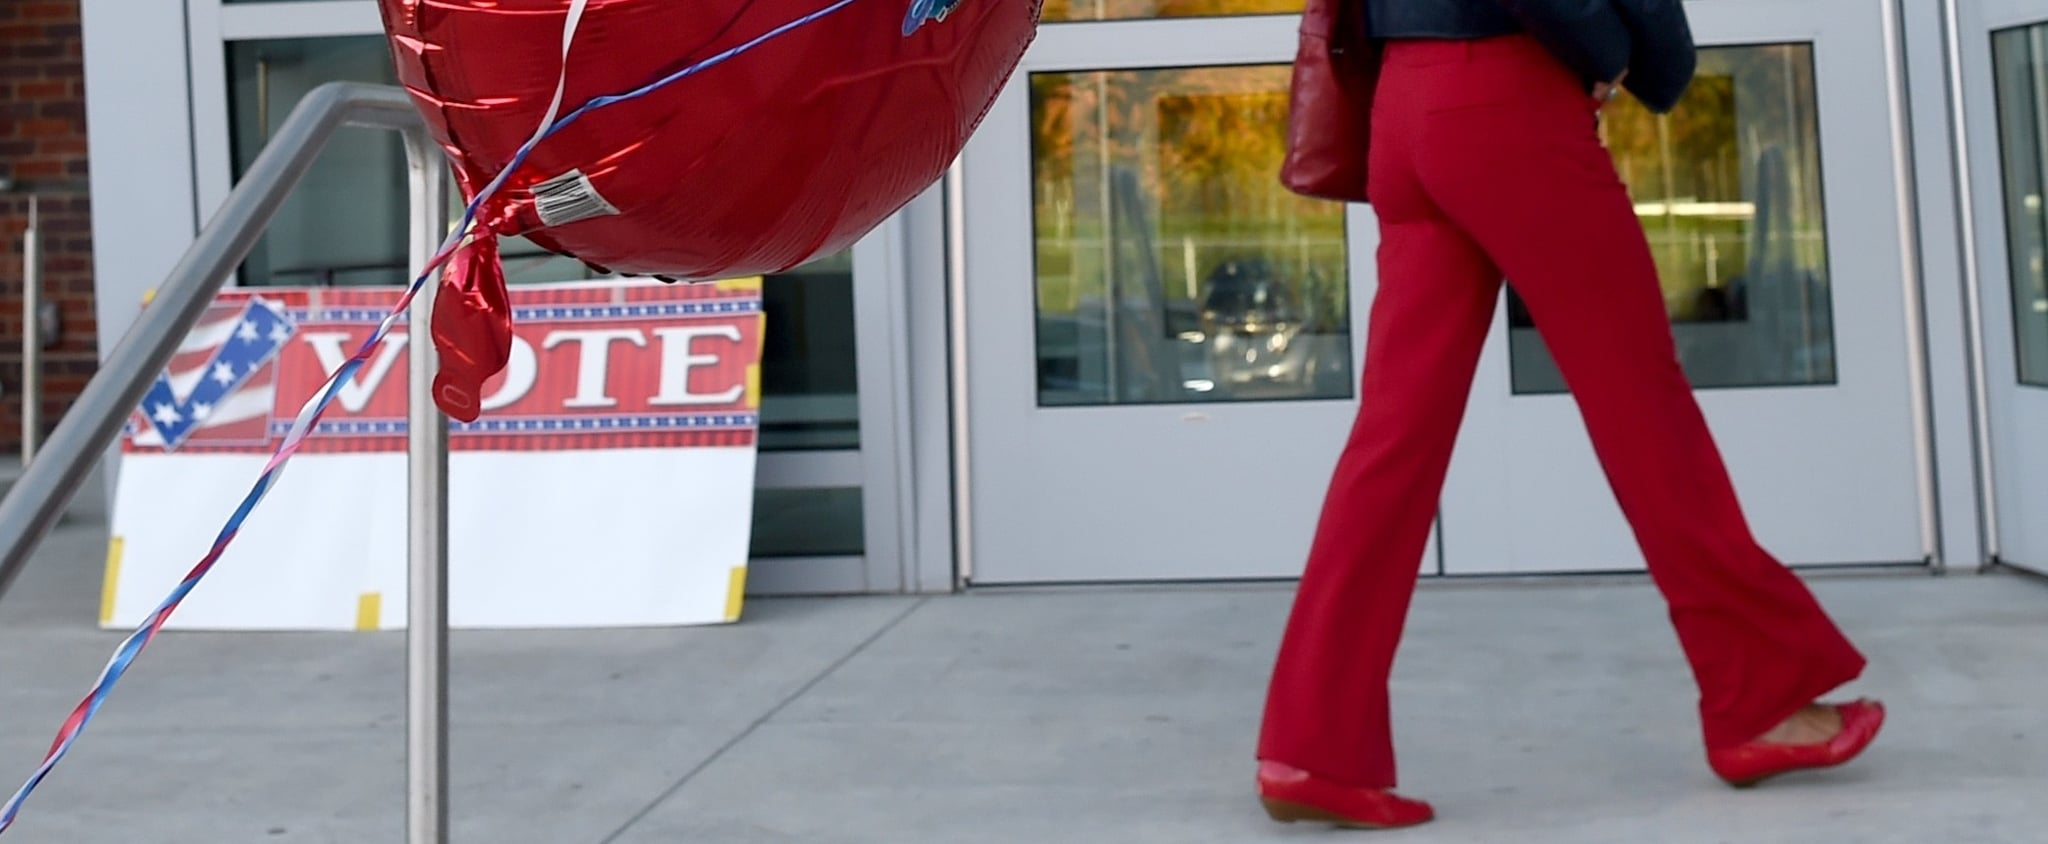 Why Isn't Election Day a Holiday in the United States?